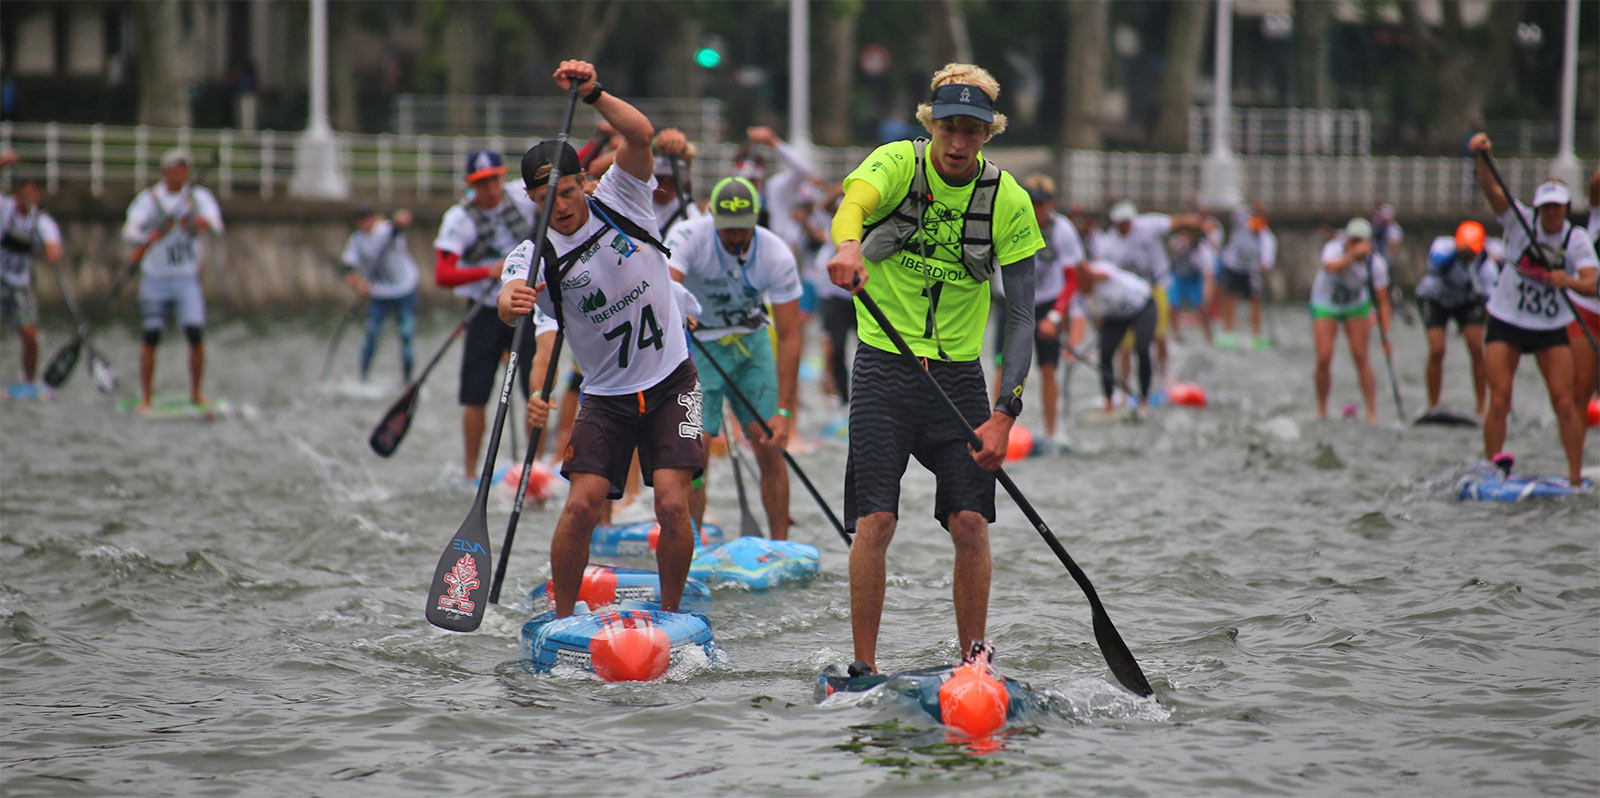 Bilbao World SUP Challenge Connor Baxter